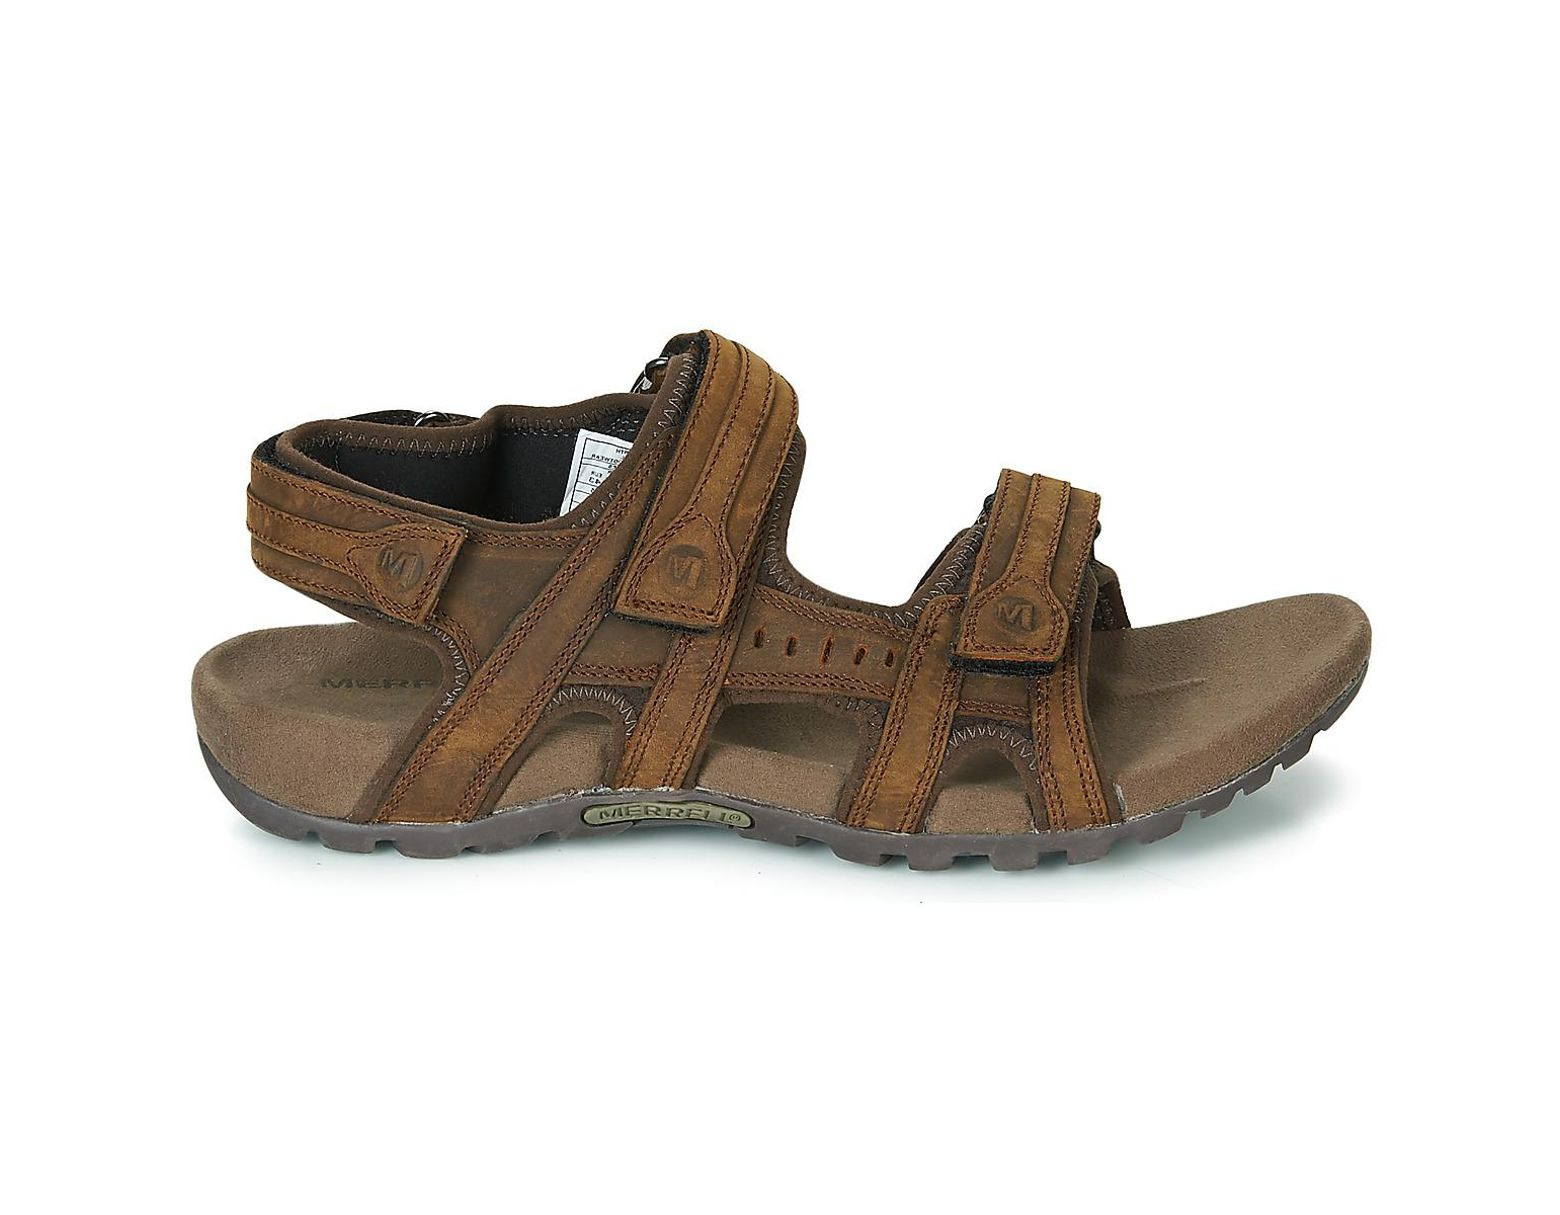 9e641c9640b3 Merrell Sandspur Lee Backstrap Sandals in Brown for Men - Lyst